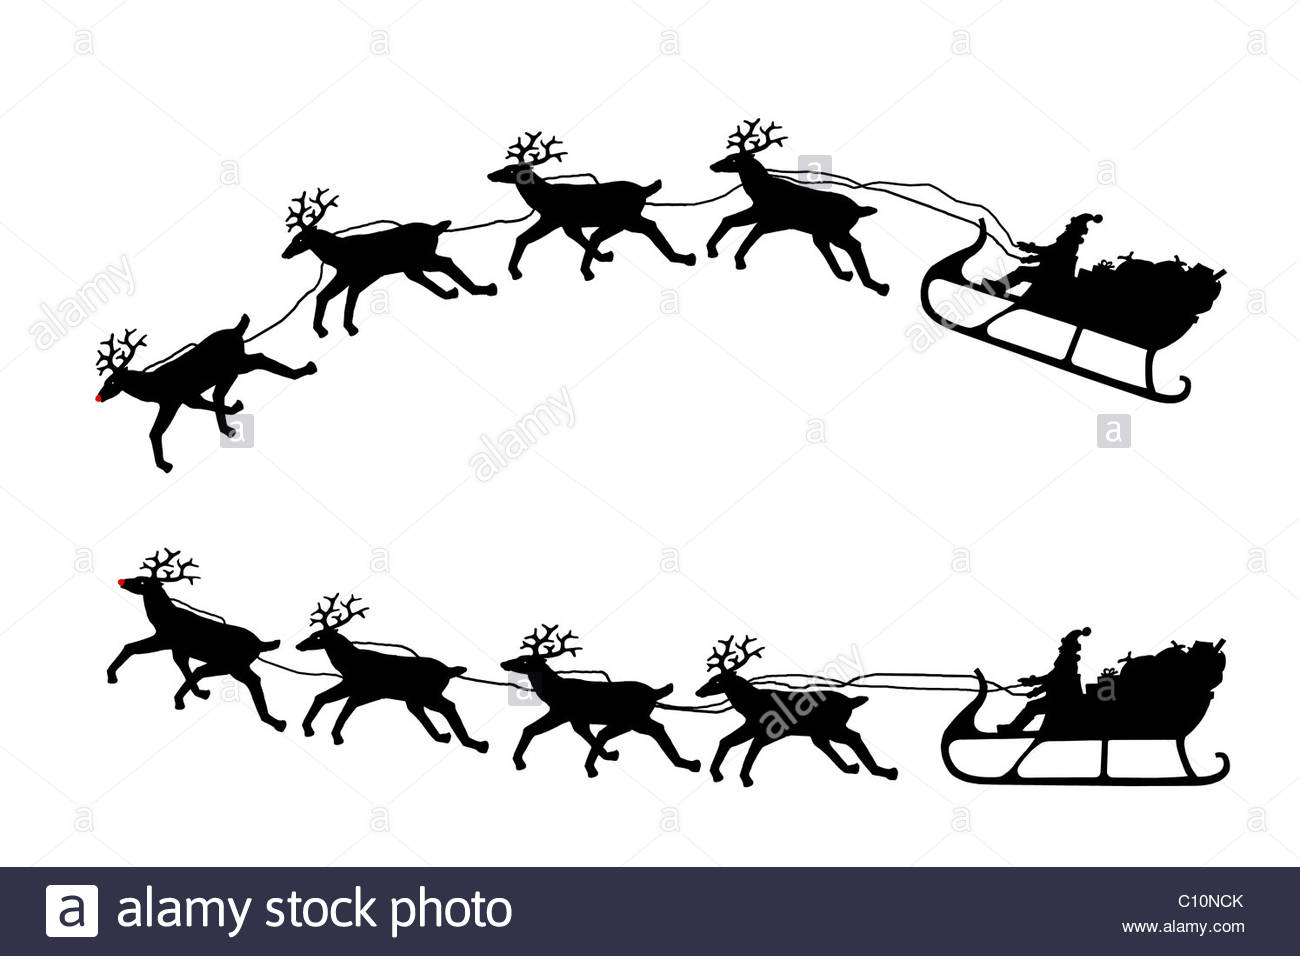 1300x956 Santa On A Sleigh With His Reindeer Stock Photo, Royalty Free